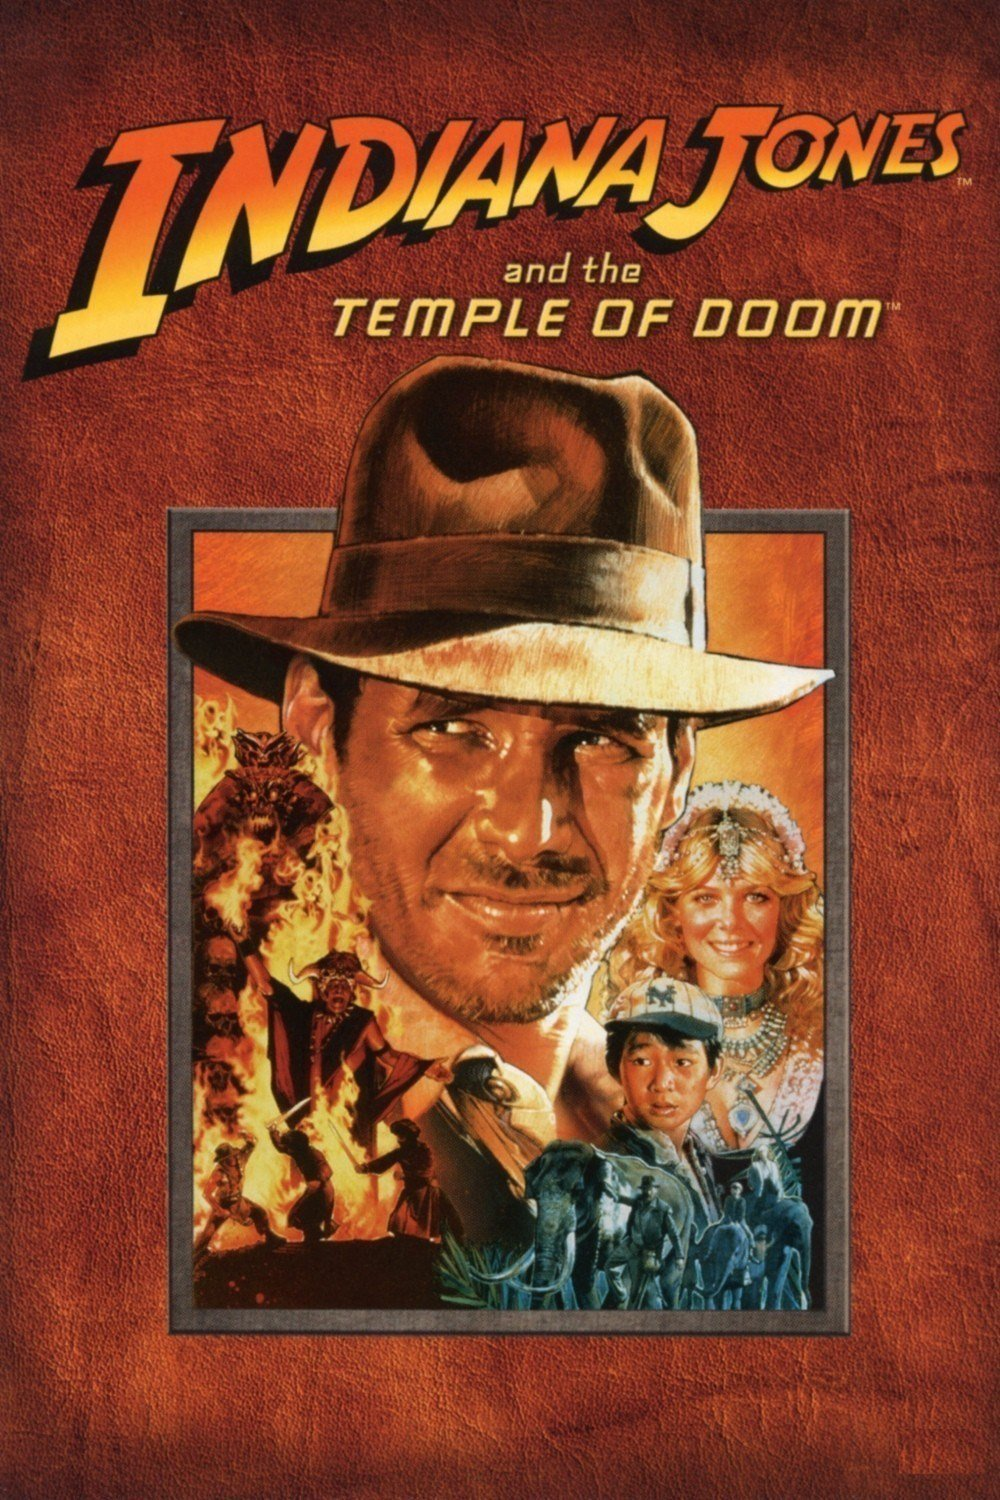 9. Indiana Jones and the Temple of Doom (1984)